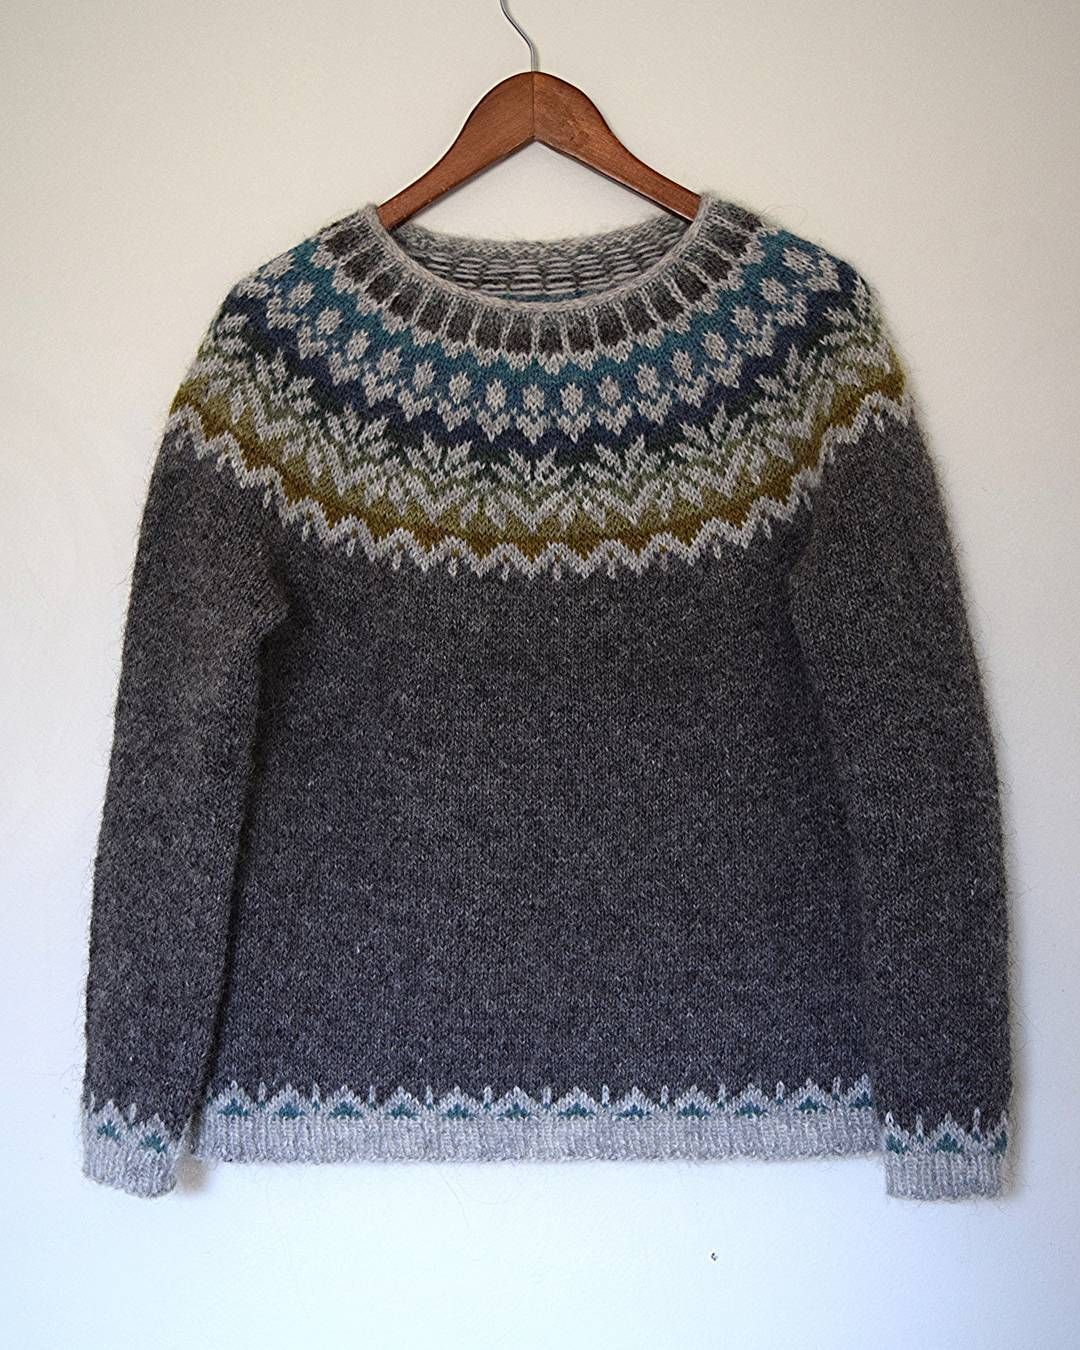 afmaeli sweater (free pattern on ravelry) in lett lopi